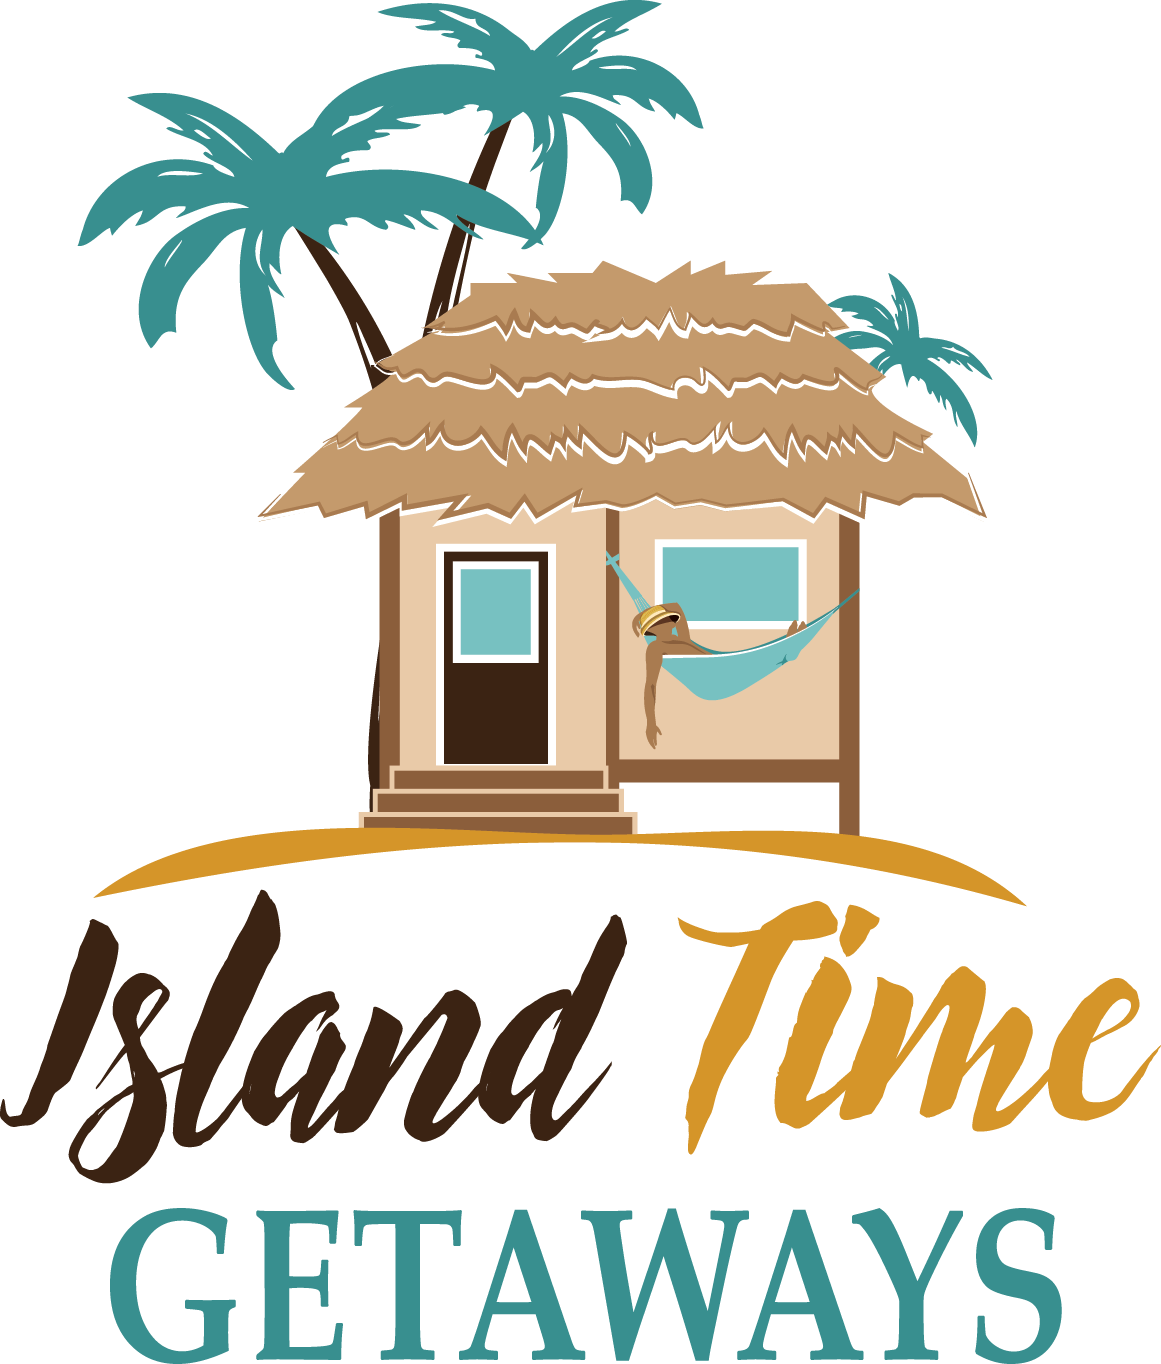 Island Time Getaways